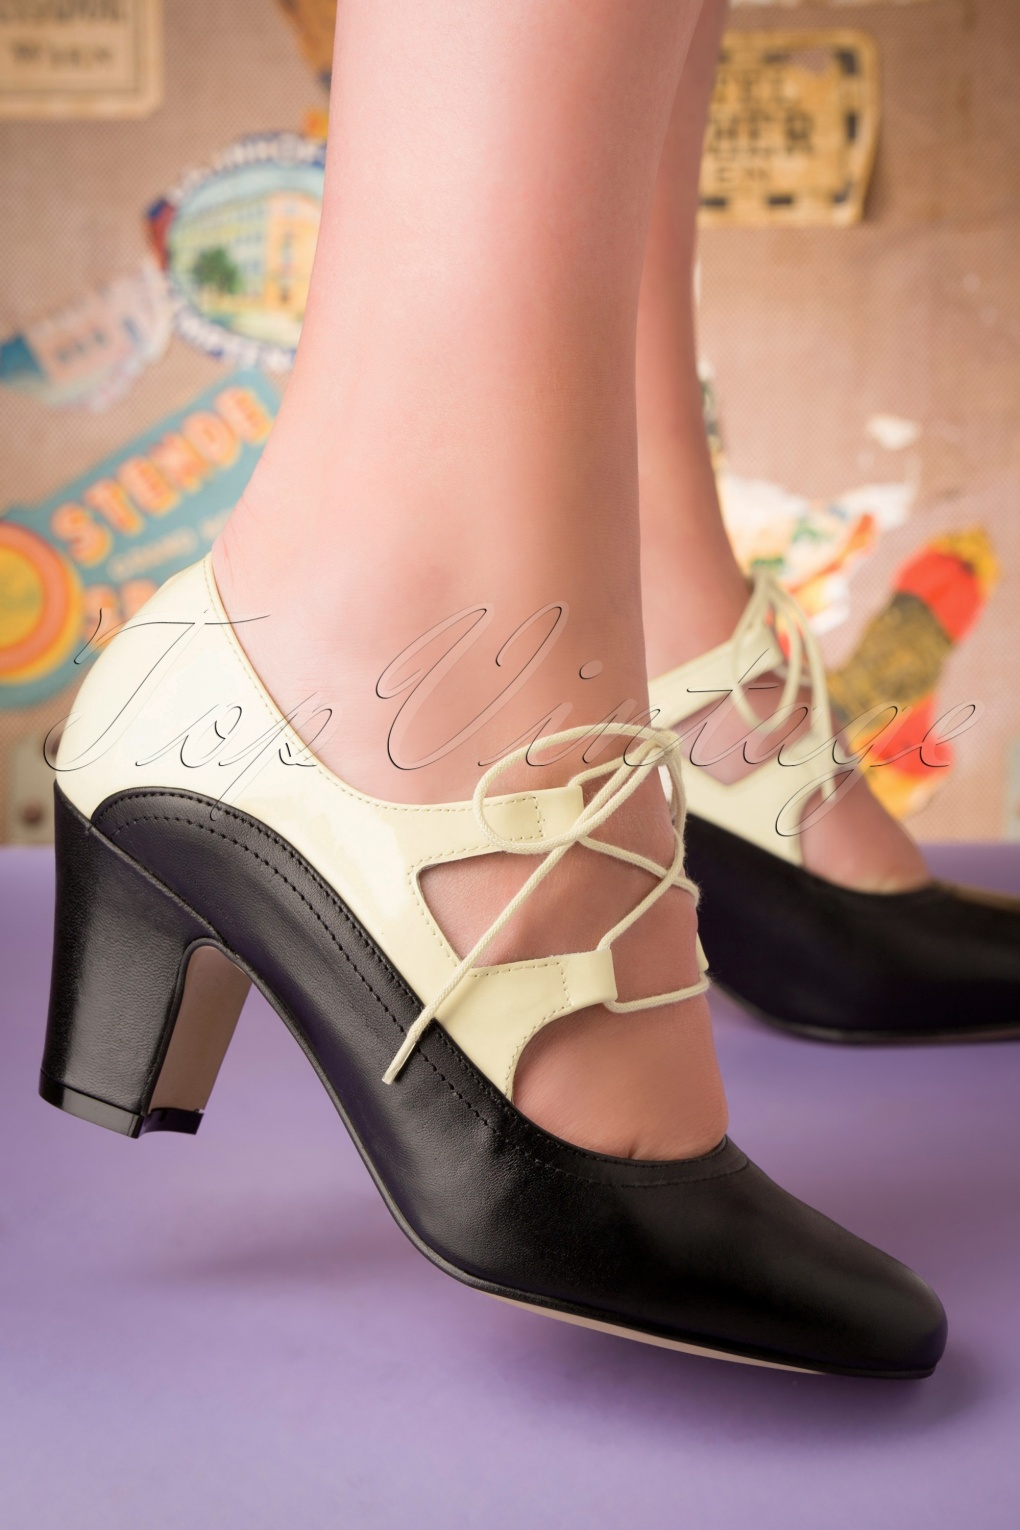 Vintage Heels, Retro Heels, Pumps, Shoes 40s Back In Time Leather Pumps in Black and White £108.47 AT vintagedancer.com